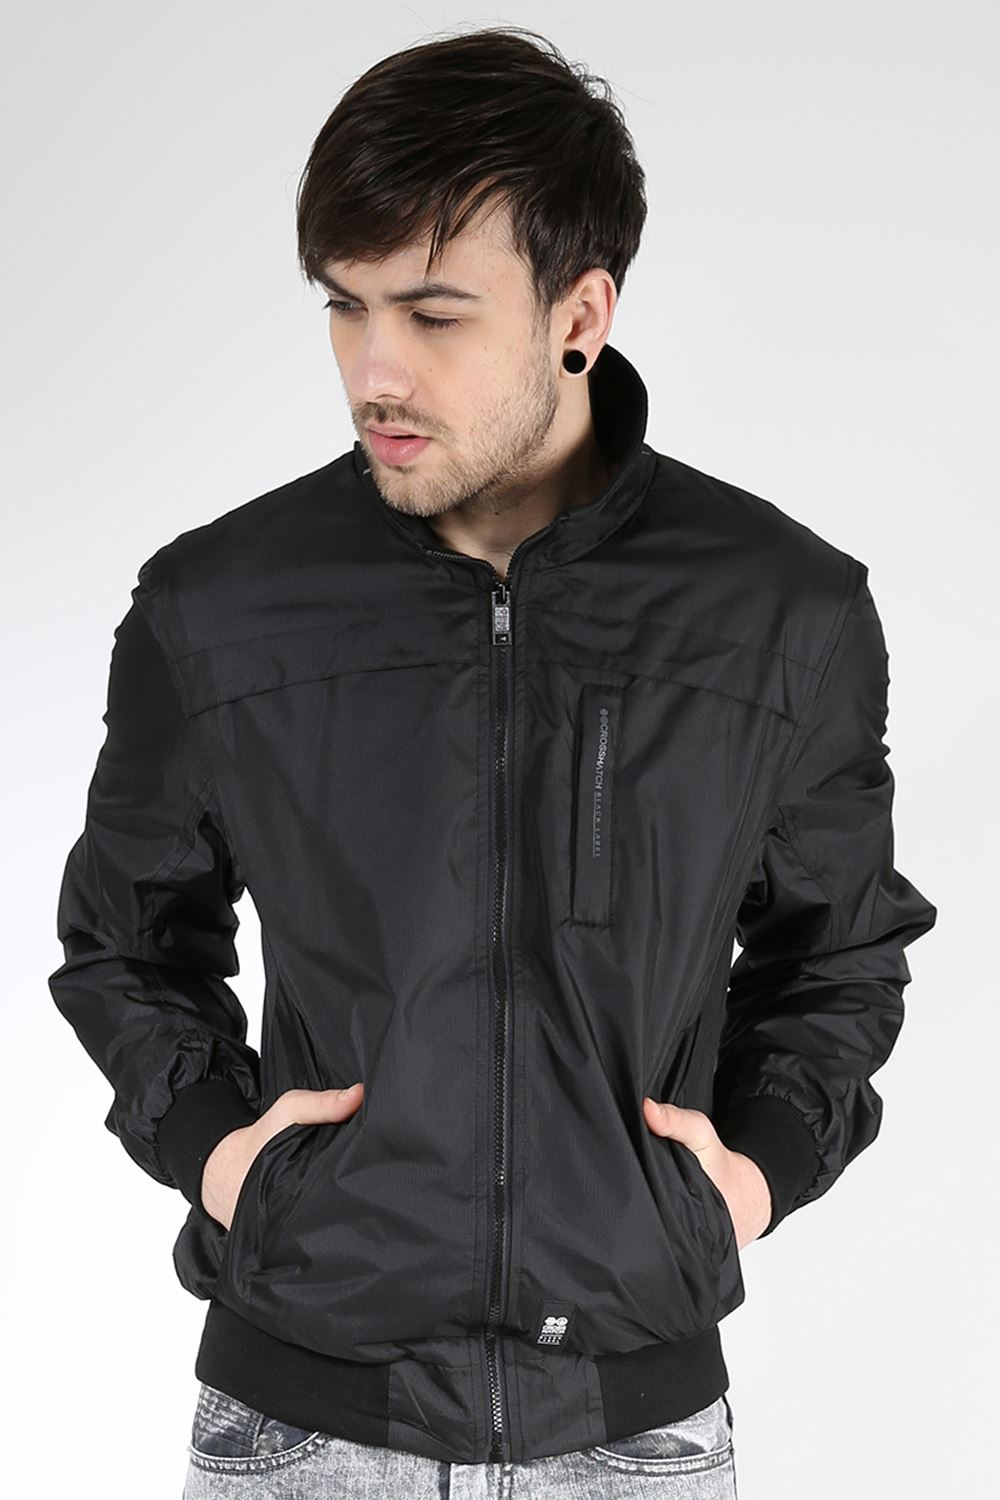 Mens Long Sleeve BRIMON Zipper Zip Up Cross Hatch Black Label Branded Top Jacket | EBay